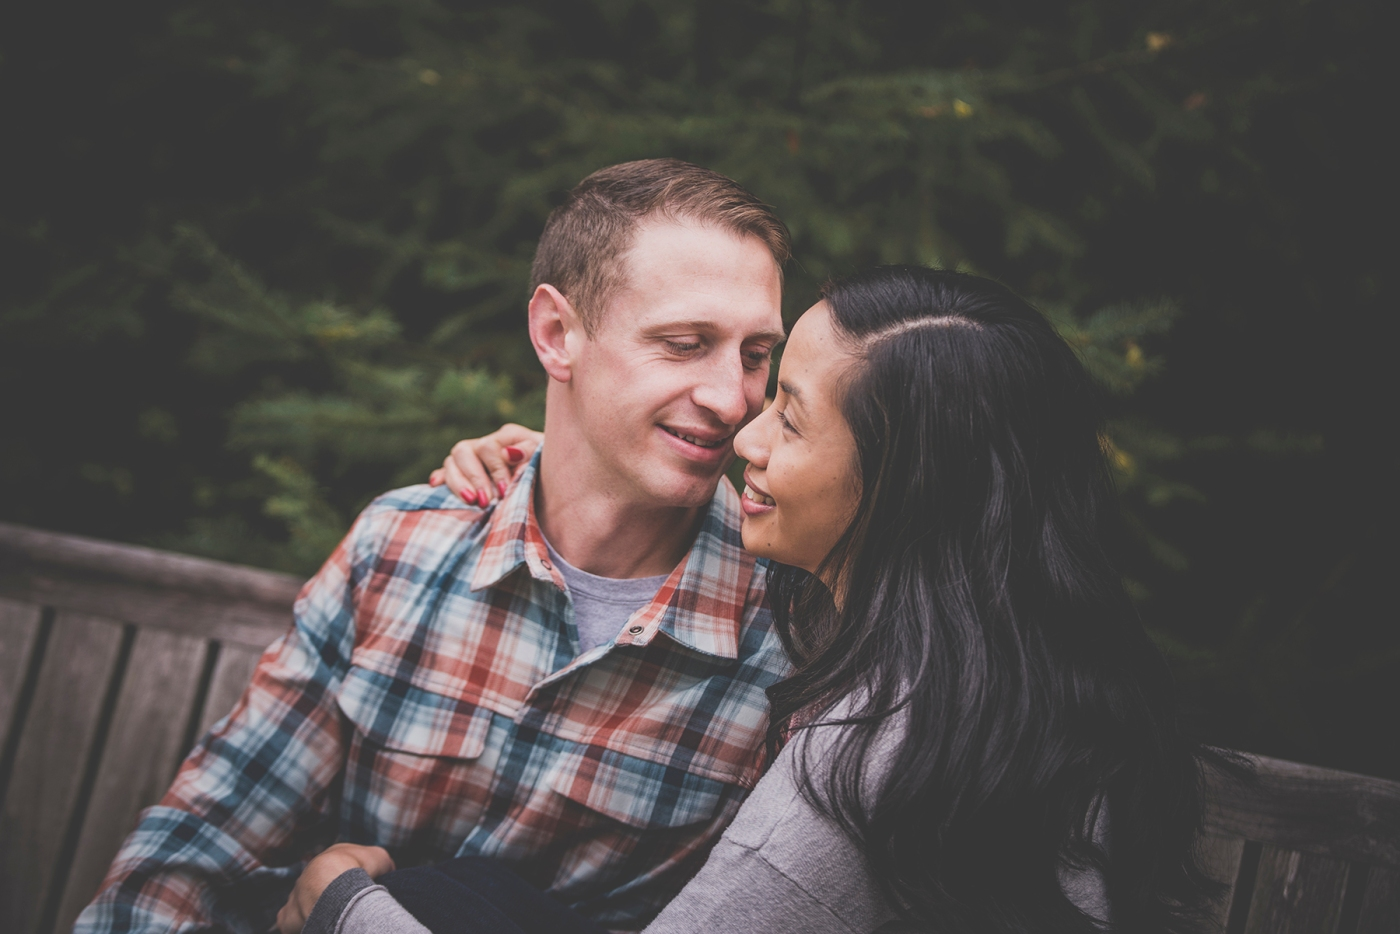 jane-speleers-photography-ju-bri-holiday-october-bellevue-botanical-garden-engagement-2016_dsc_5765